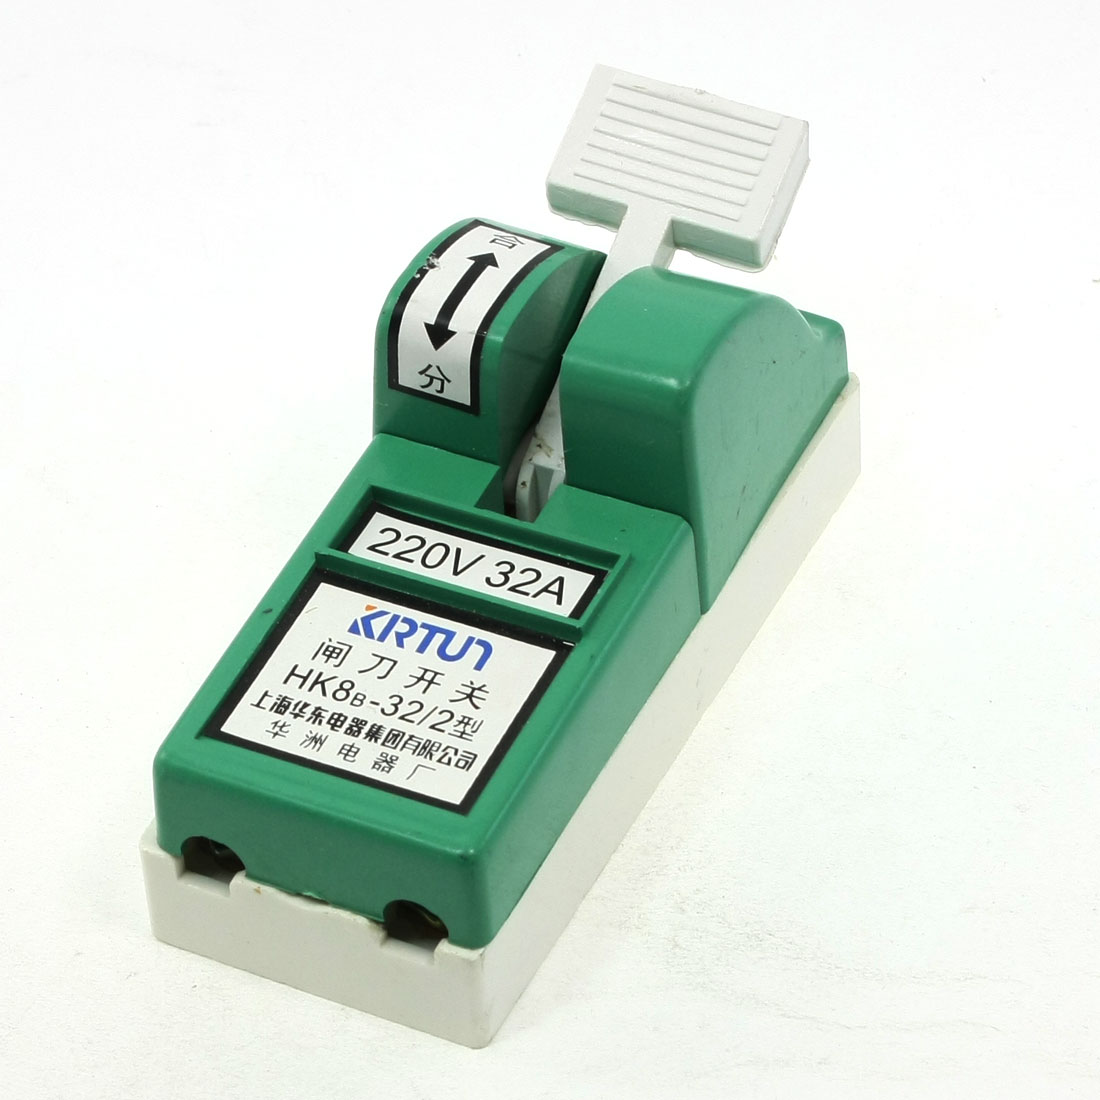 AC 220V 32A One Pole Single Throw Circuit Control Closing Disconnect Switch Green